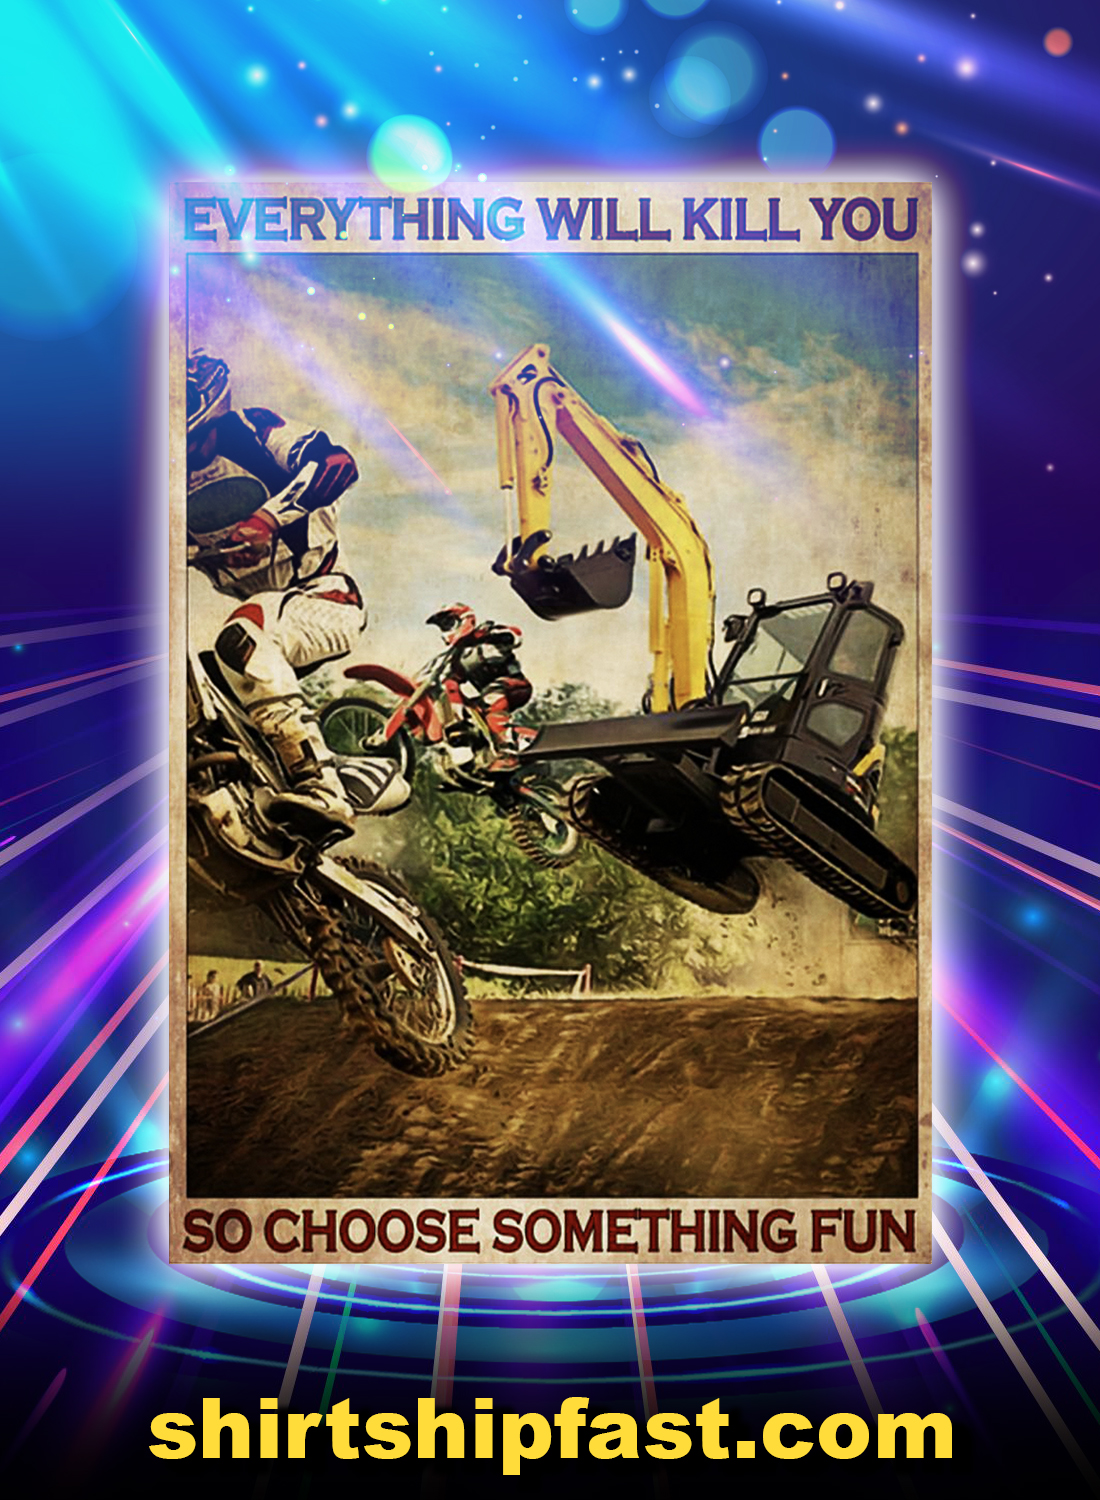 Motorcross and escavator choose something fun poster - A4